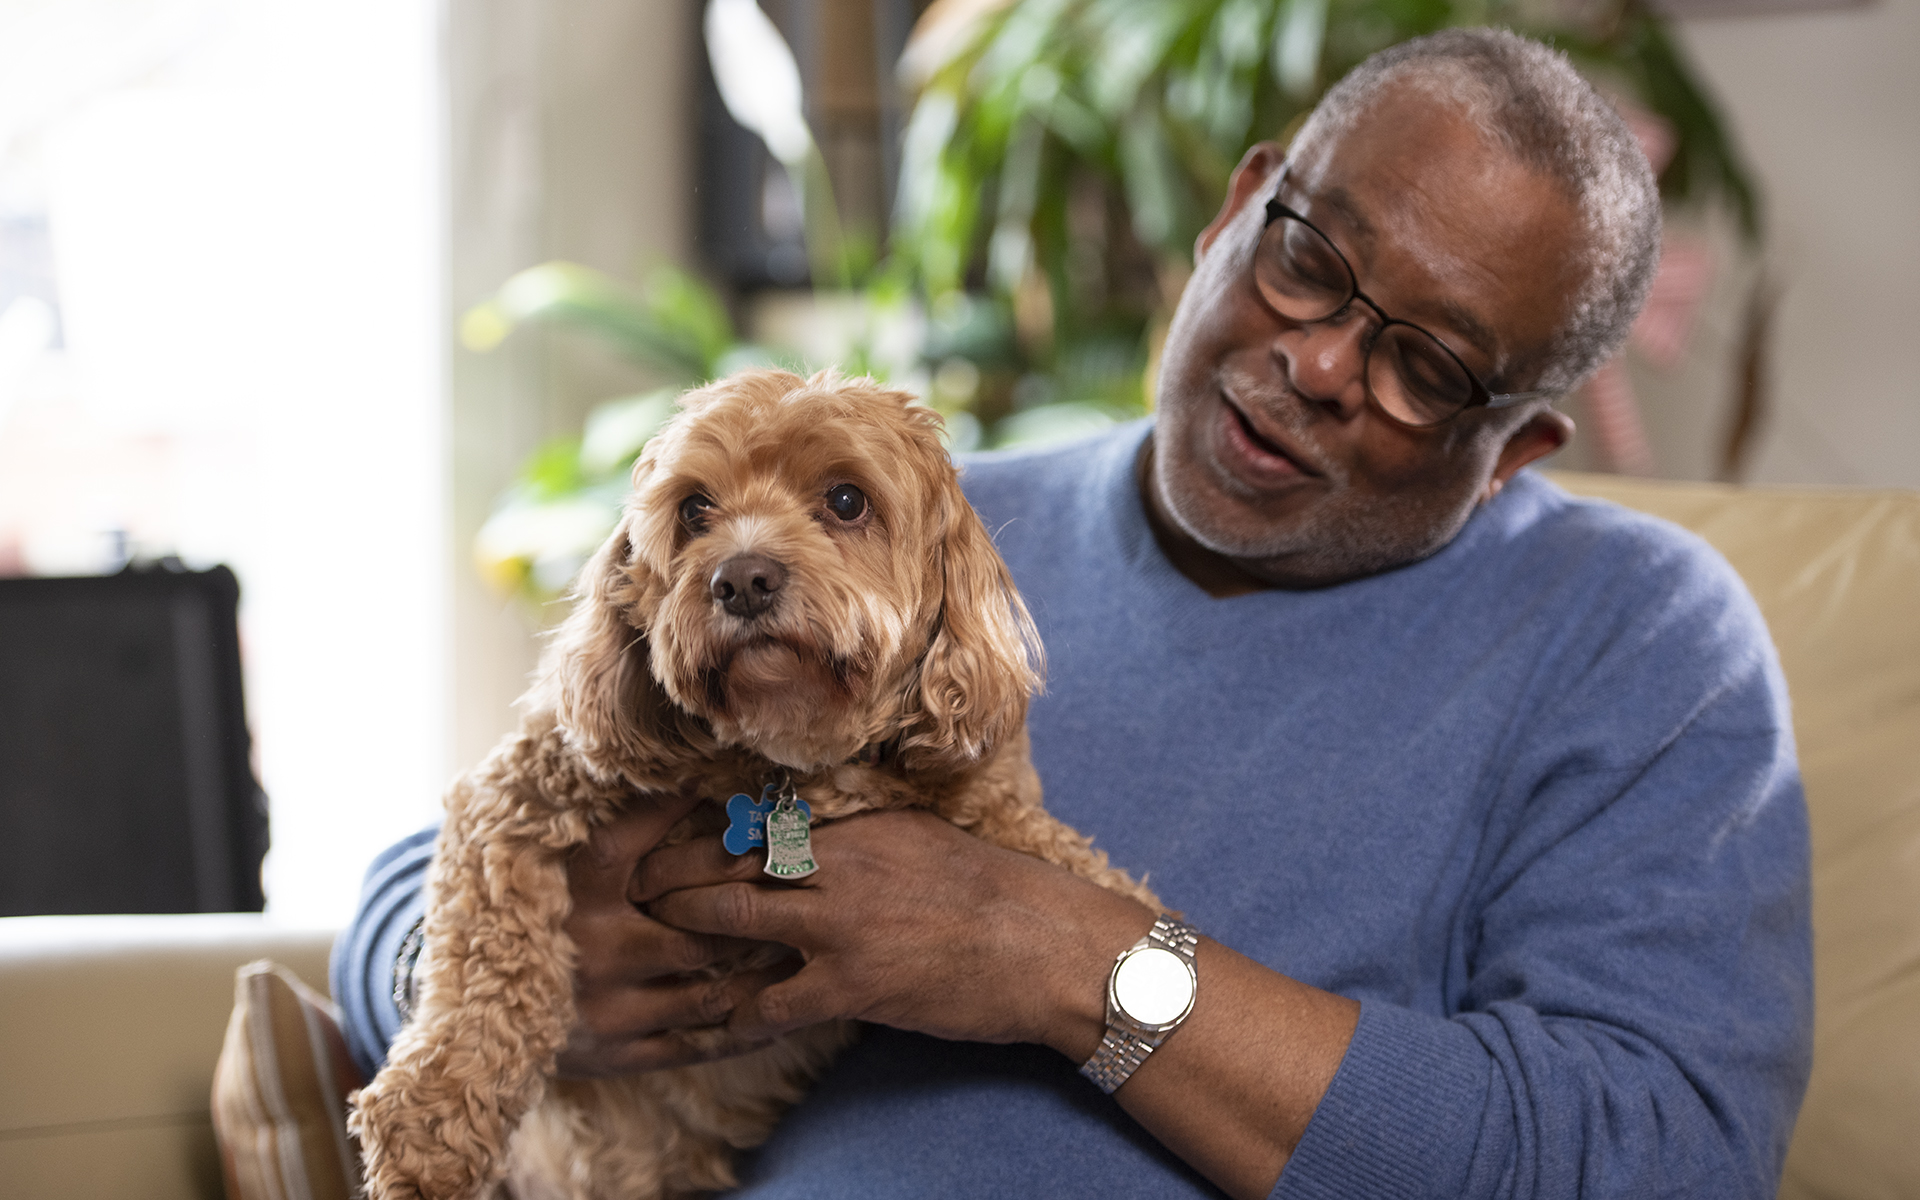 Inclusion = Lifesaving: man with dog